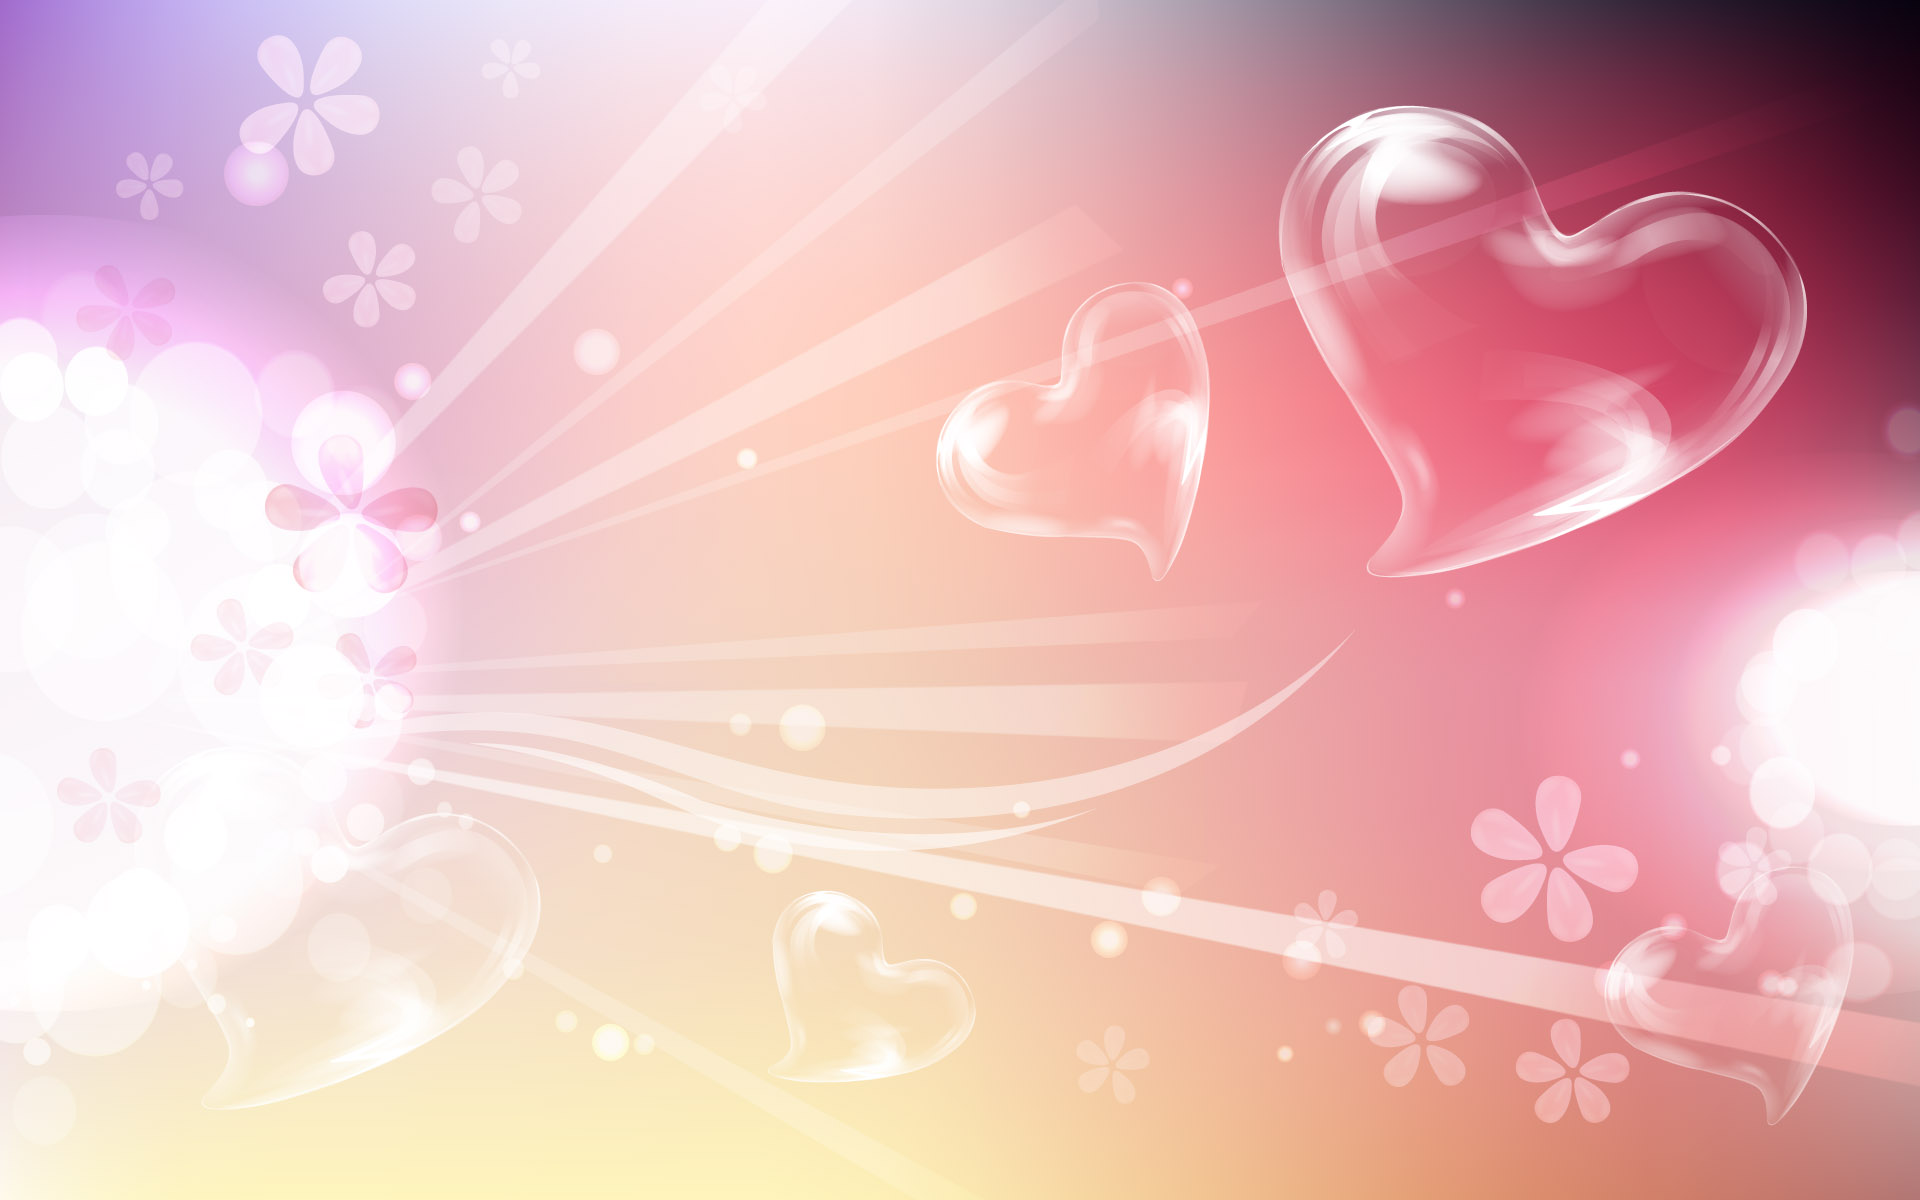 heart shape animated qrjtj background valentine wallpapers 1920x1200